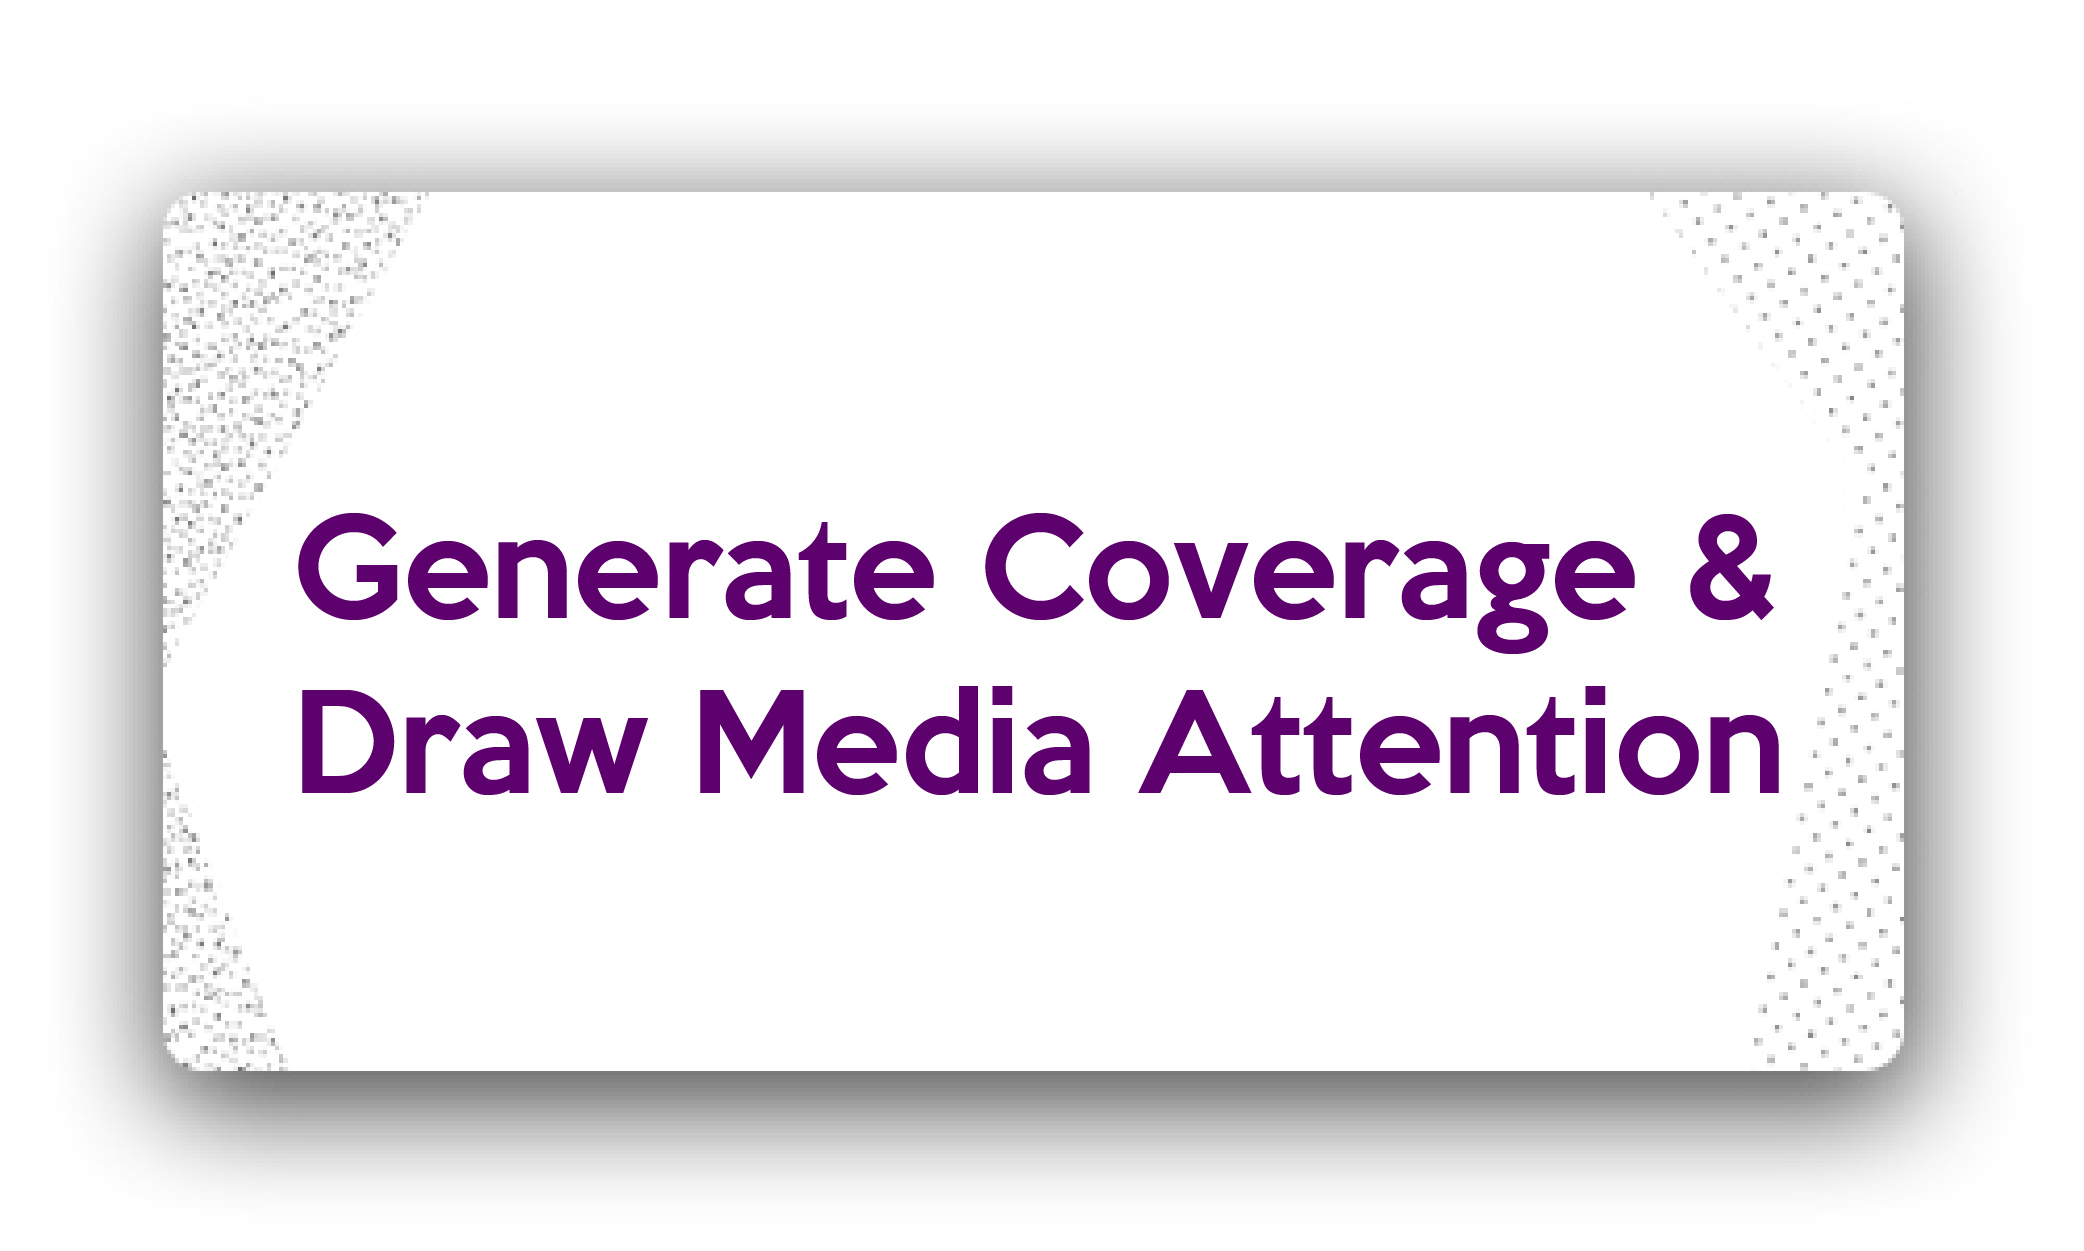 Title-How to Generate Coverage & Draw Media Attention to a Story